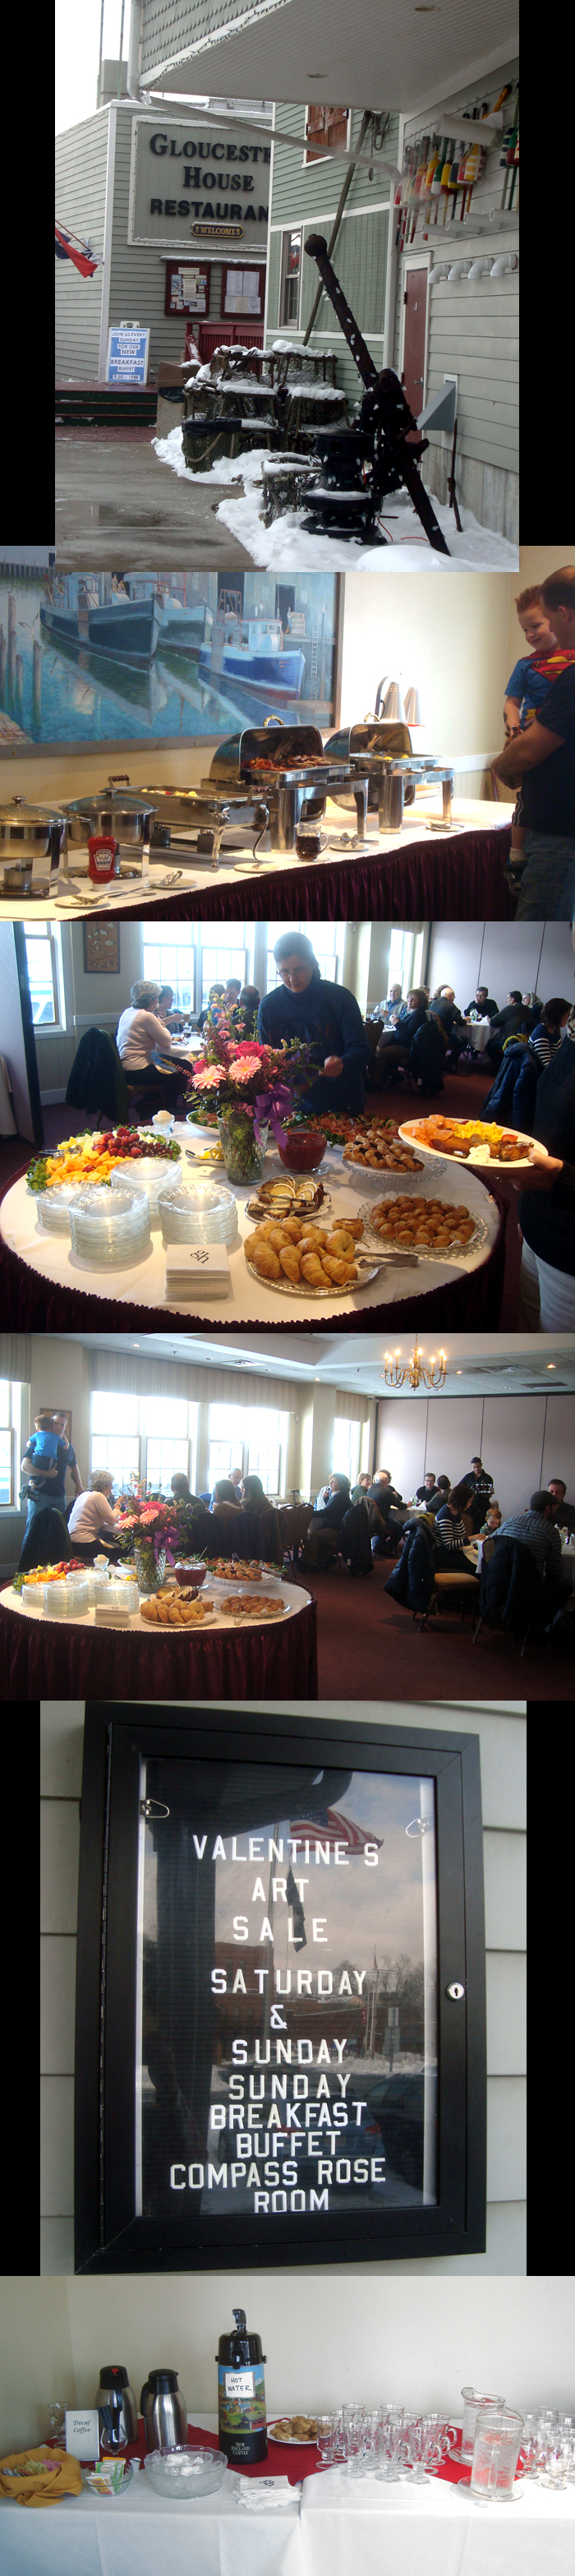 gloucester house breakfast buffet and thanks